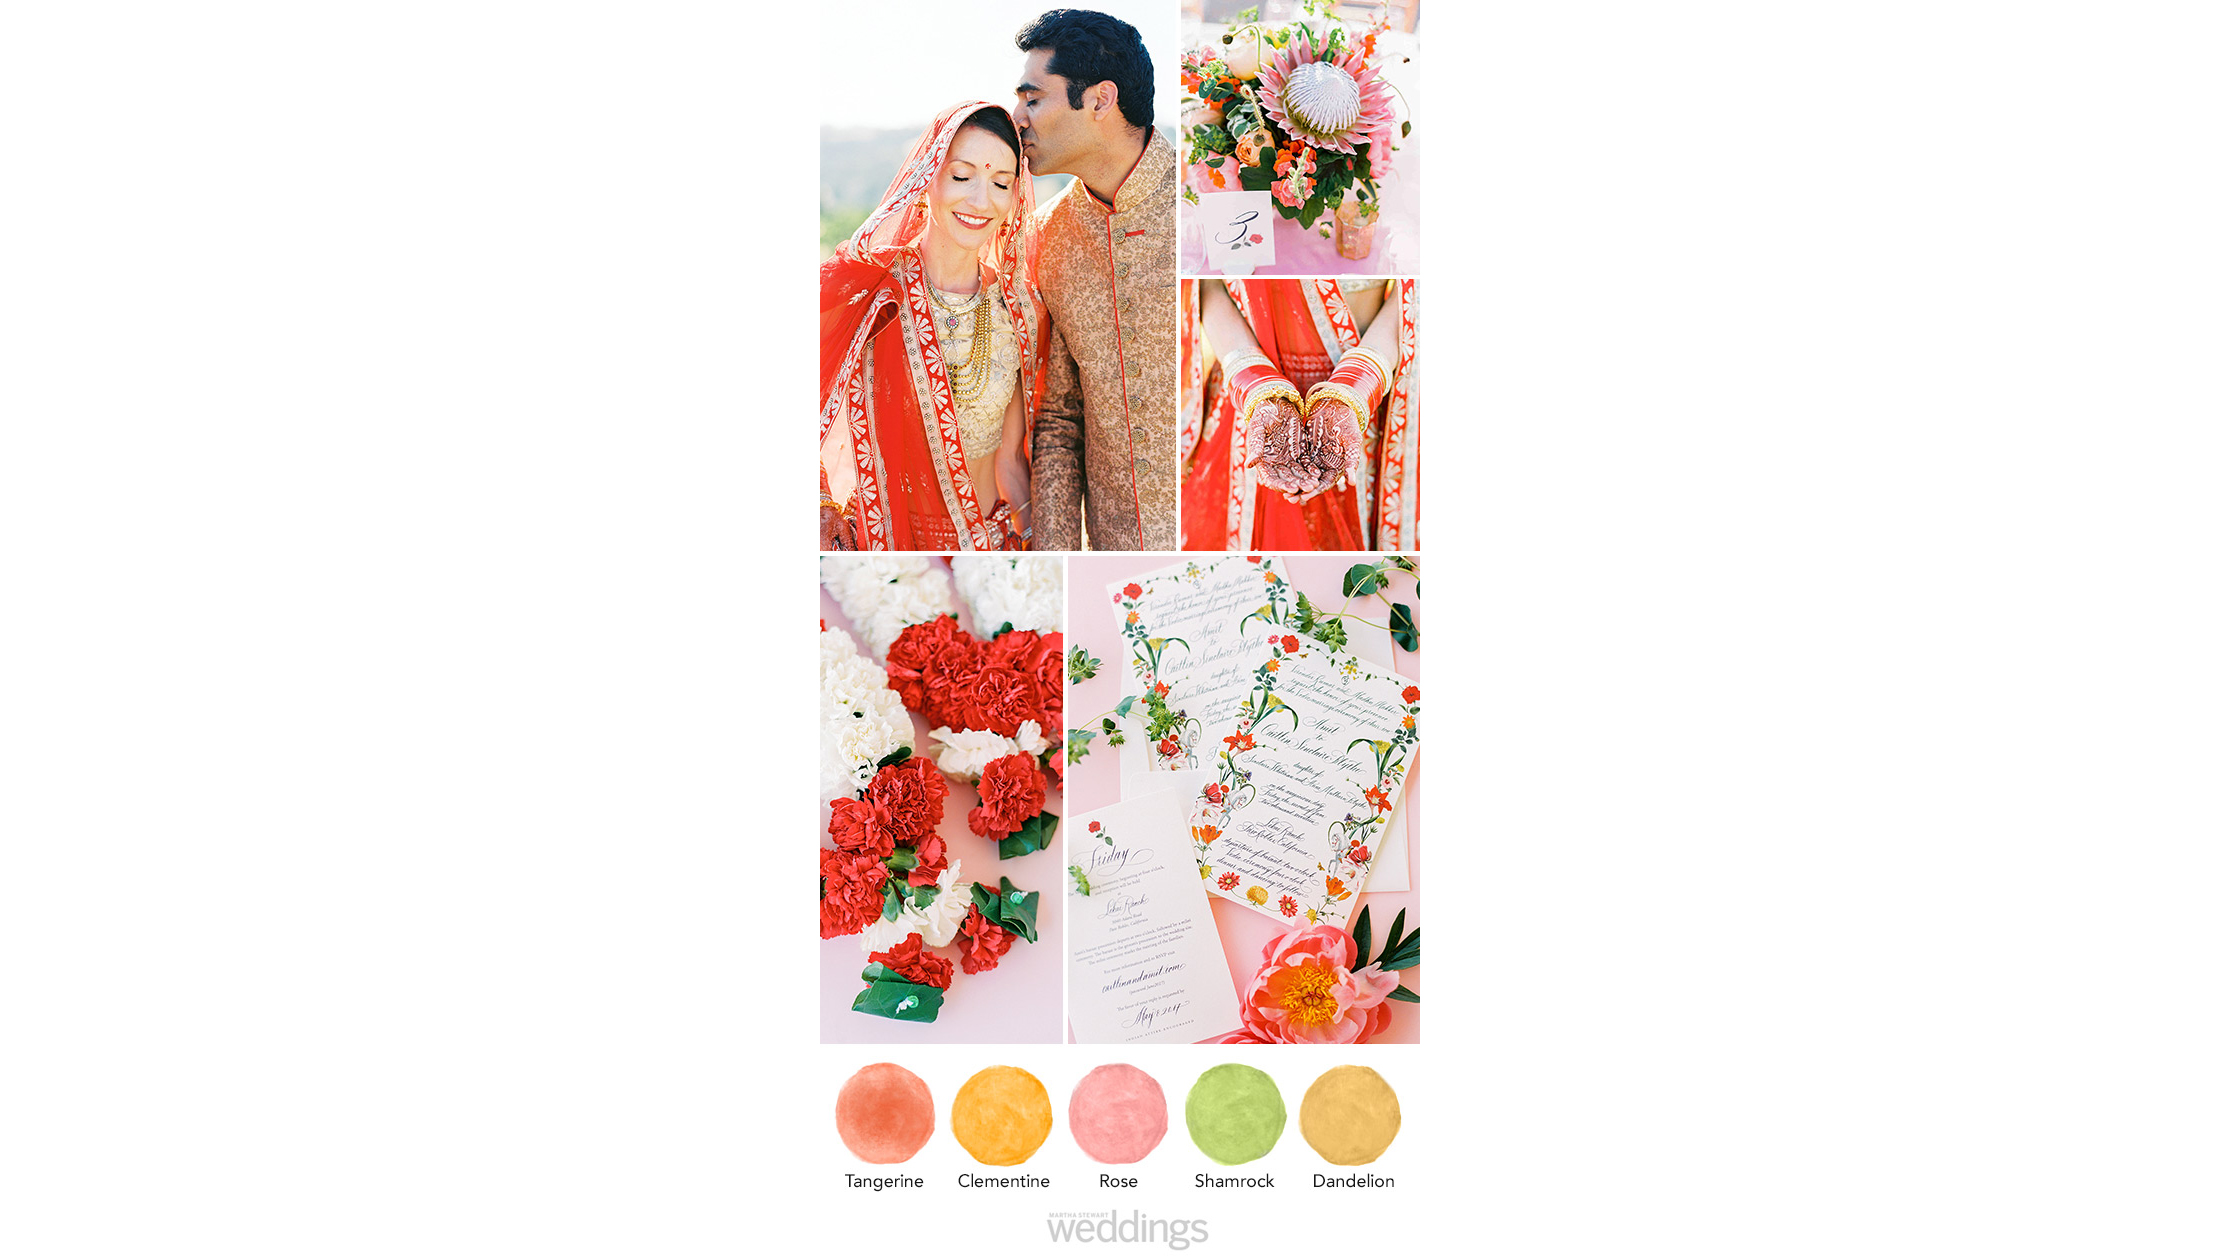 tangerine rose wedding color palette ideas